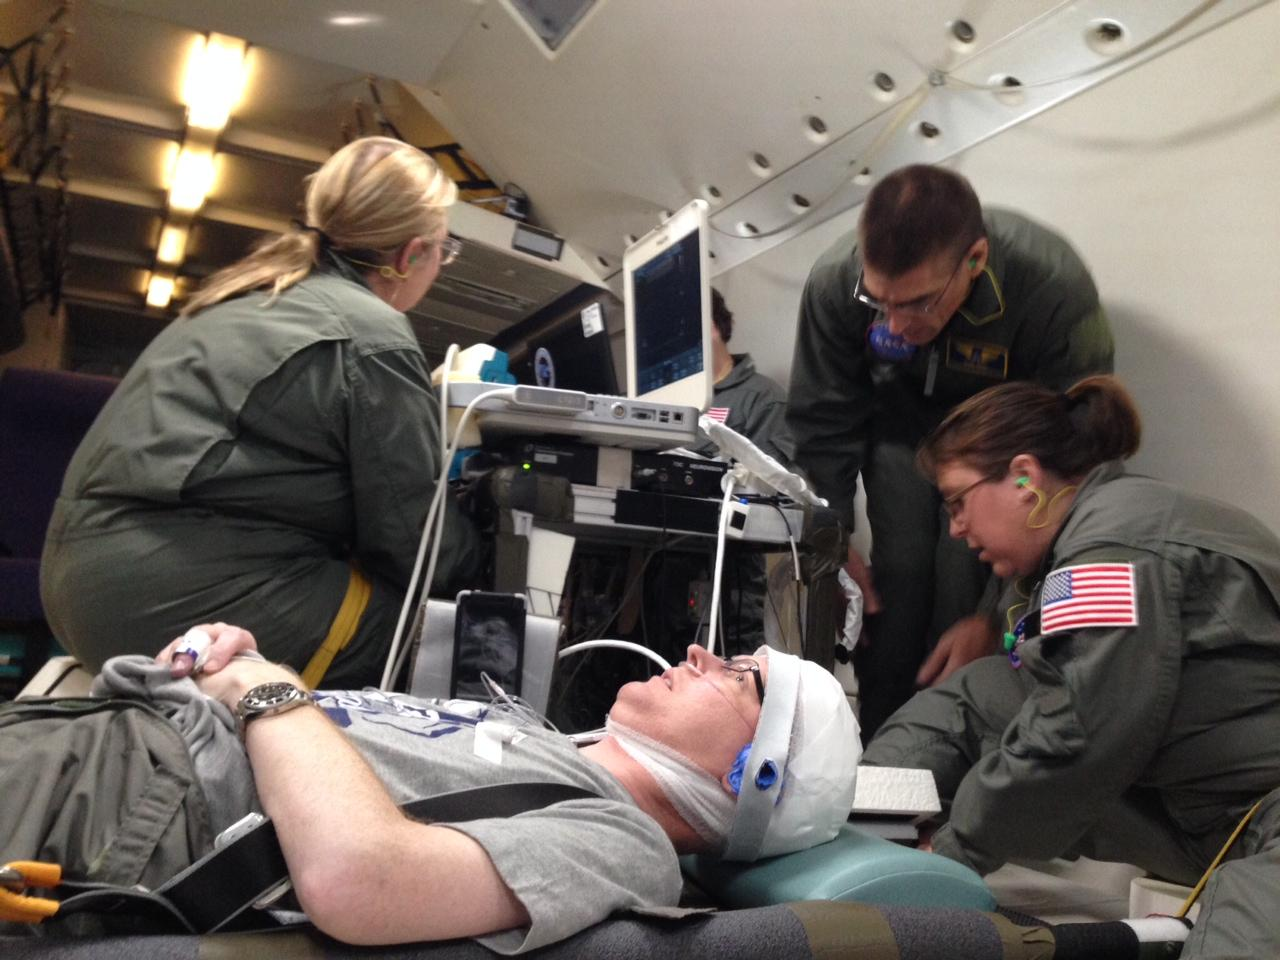 Cancer patient and volunteer Trent Barton imaged lying down during the parabolic flight